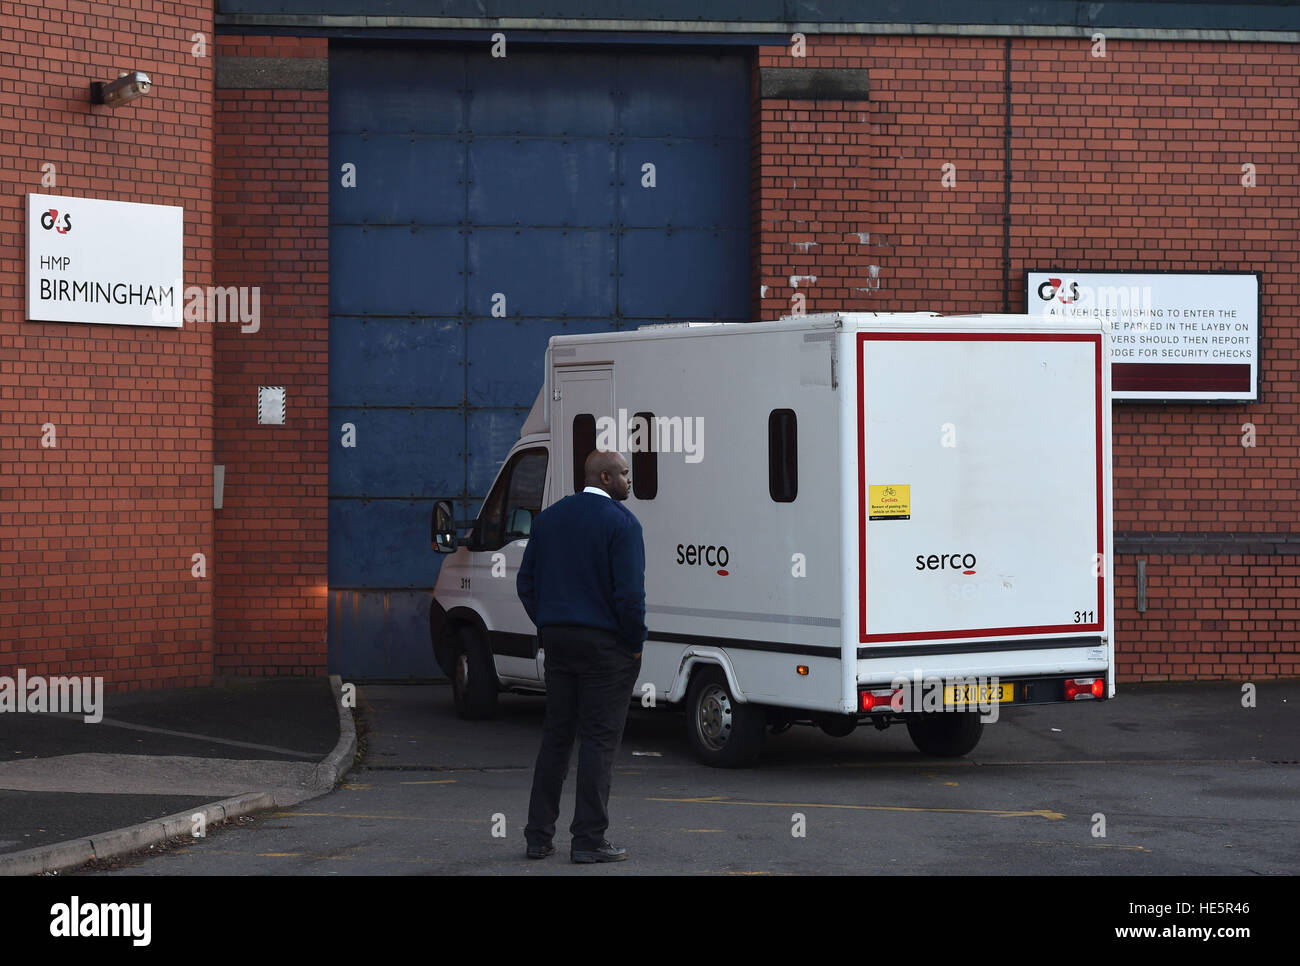 db6814ccc4 A custody vans arrives at HMP Birmingham after a disturbance at the prison  yesterday. -